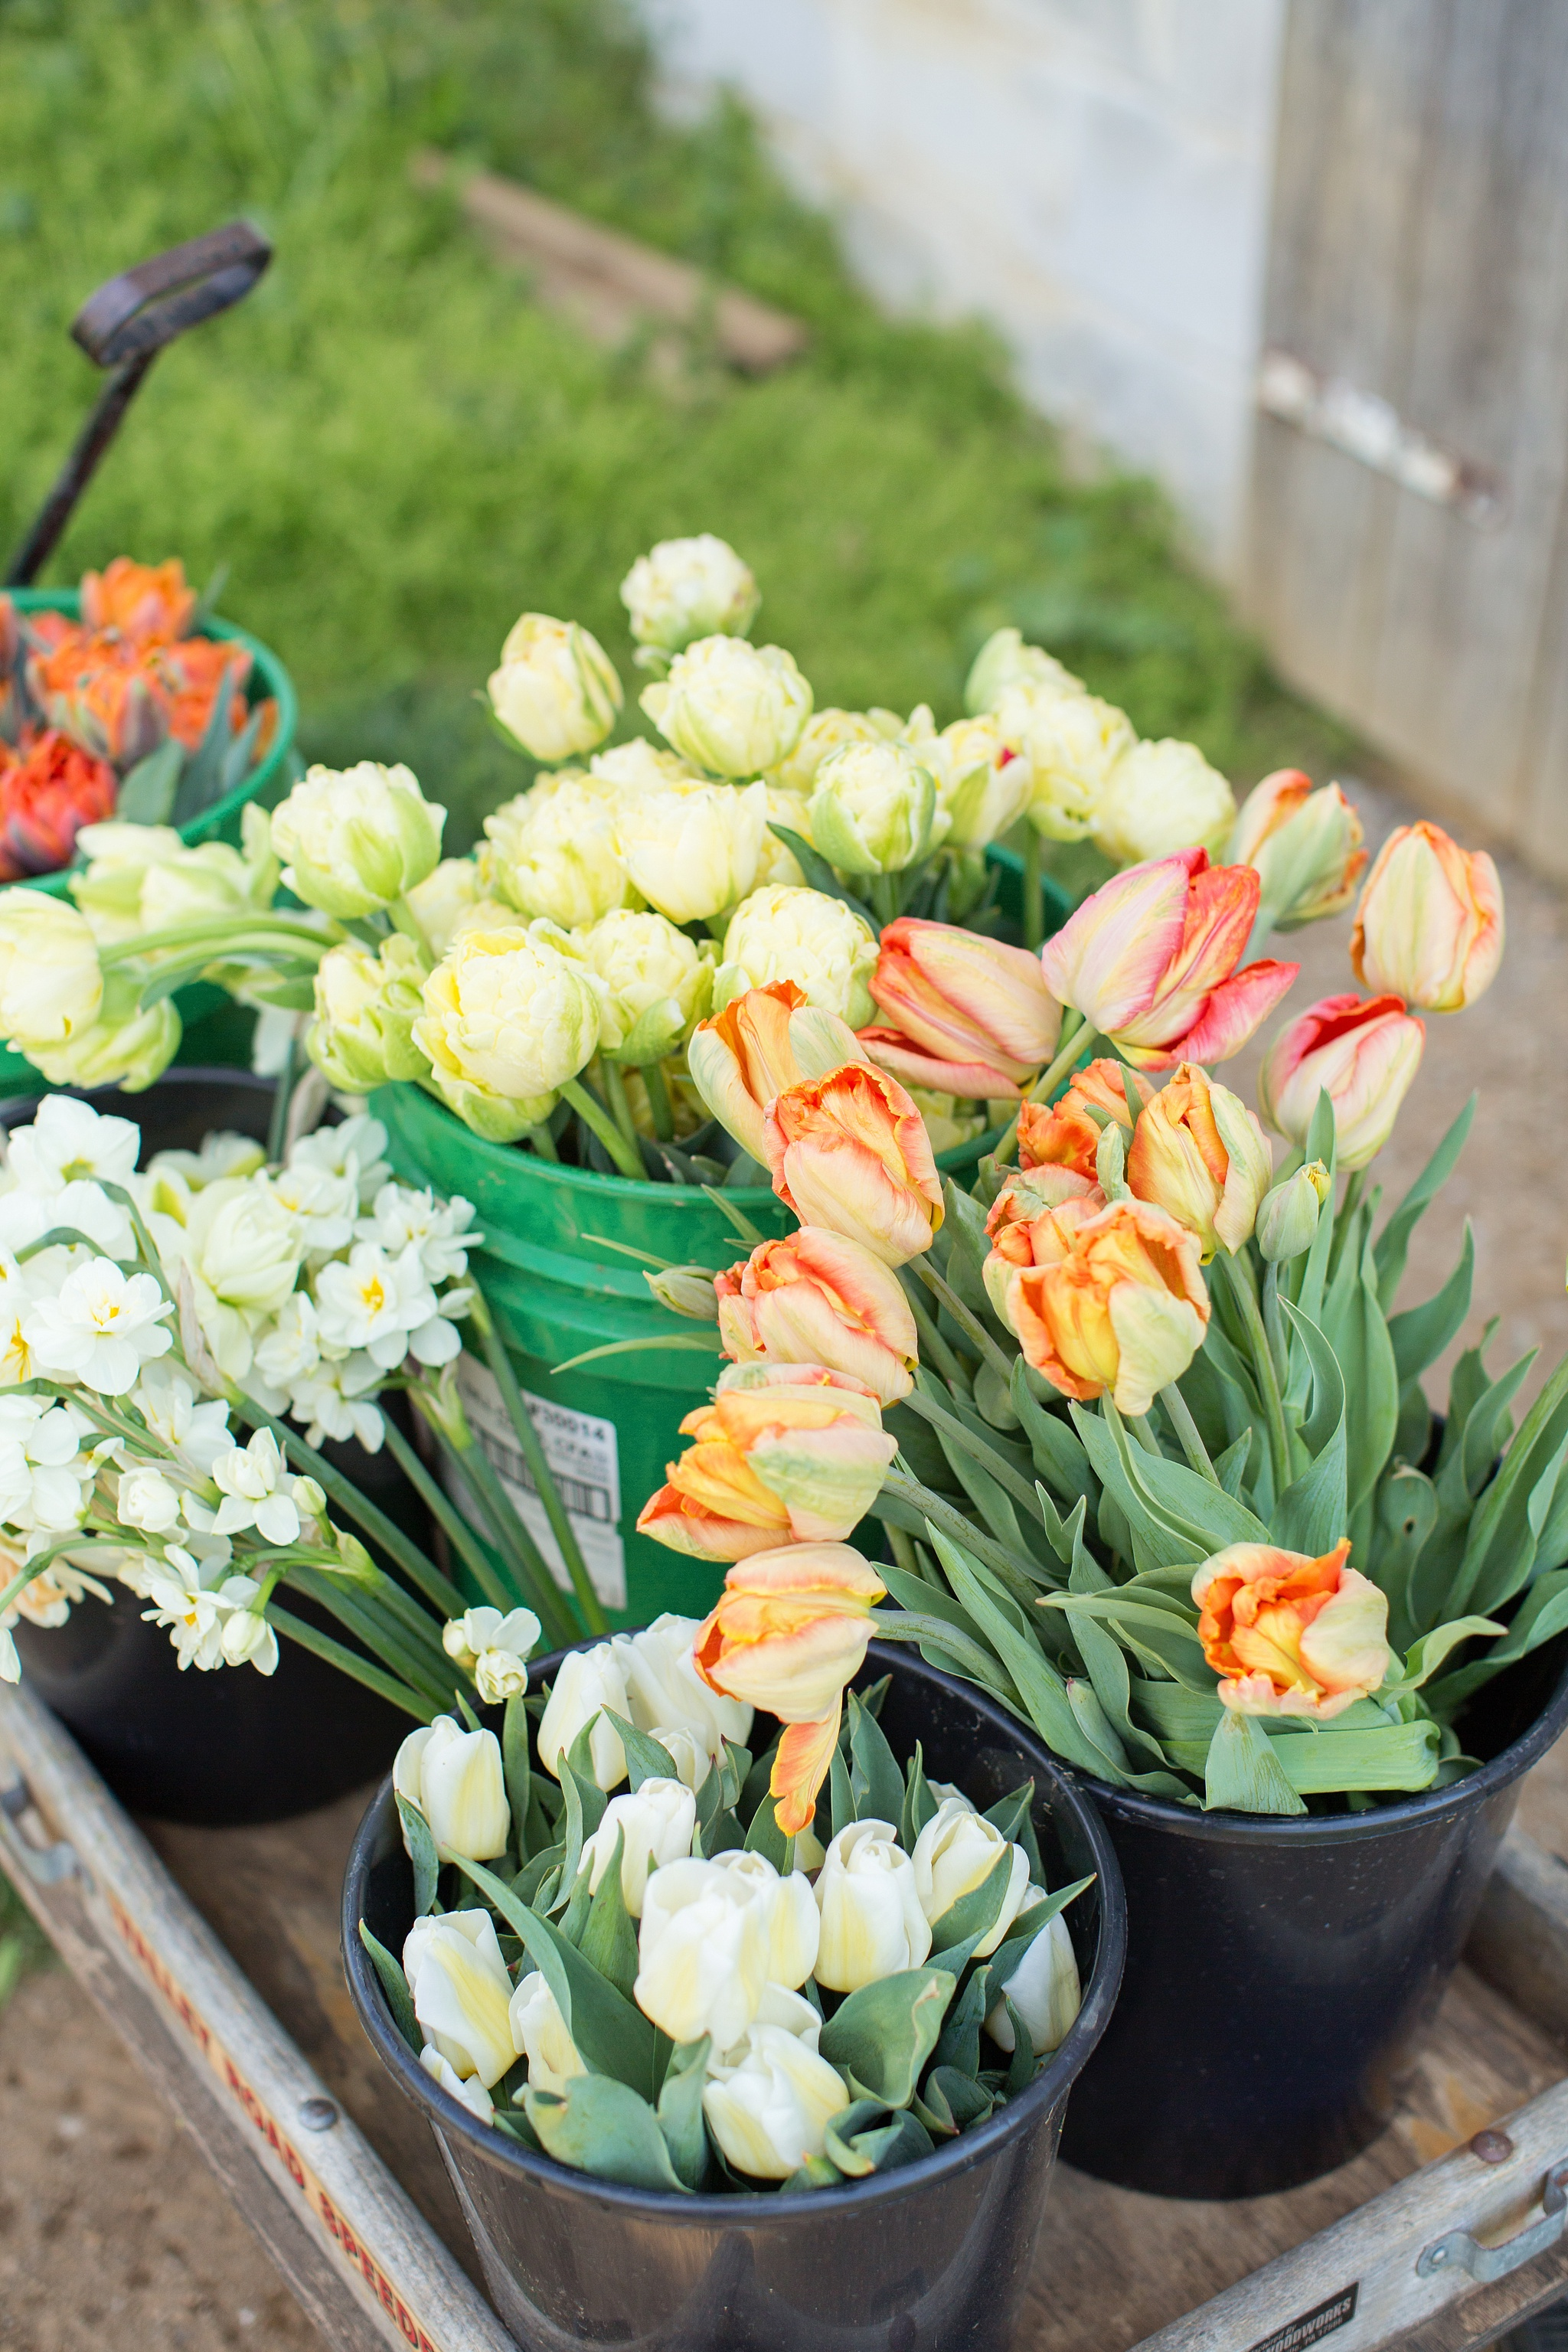 We gather the flowers for you and hand them off to you for your creative touch!